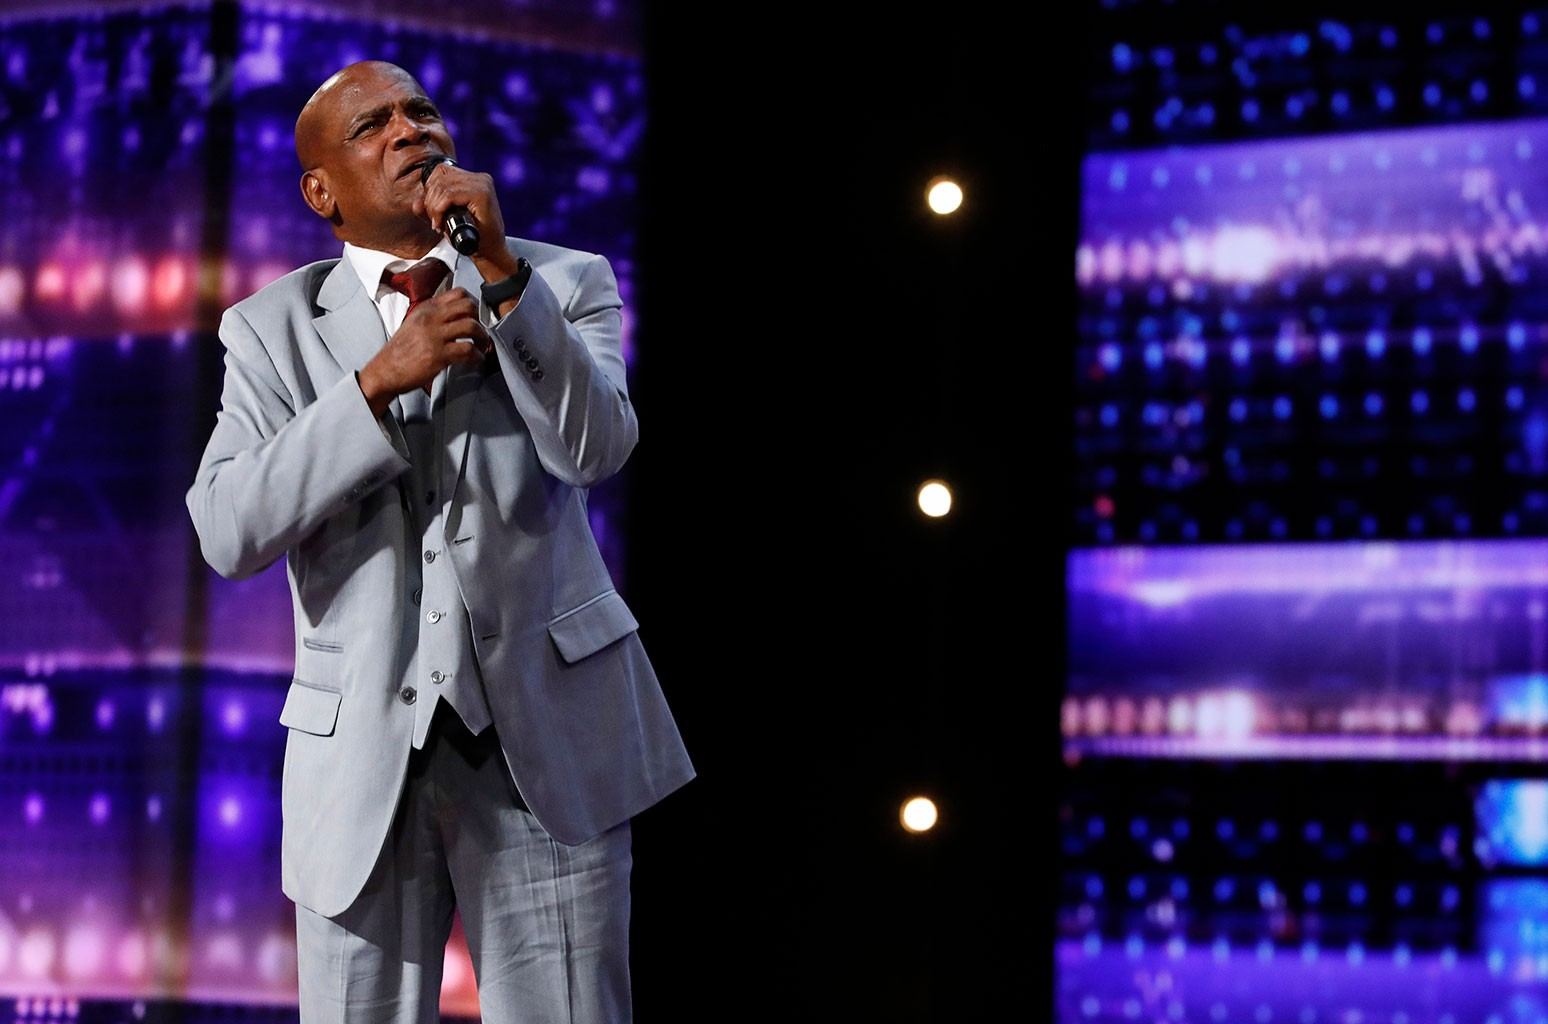 Elton John 'Moved to Tears' By Wrongfully Convicted Singer Archie Williams on 'America's Got Talent'